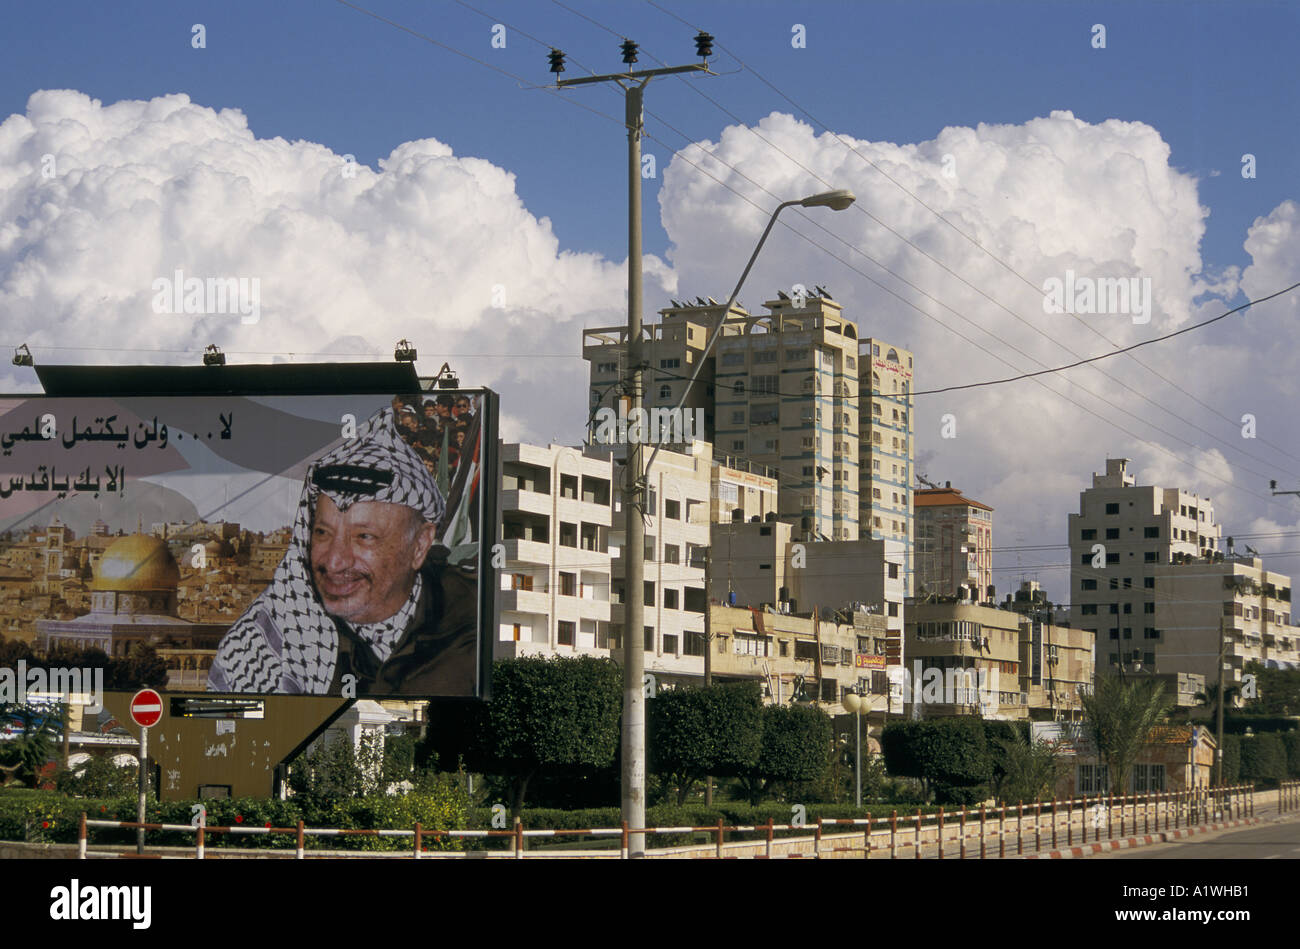 Large poster showing YASSER ARAFAT and Al Aqsa mosque with city buildings behind.2000 - Stock Image